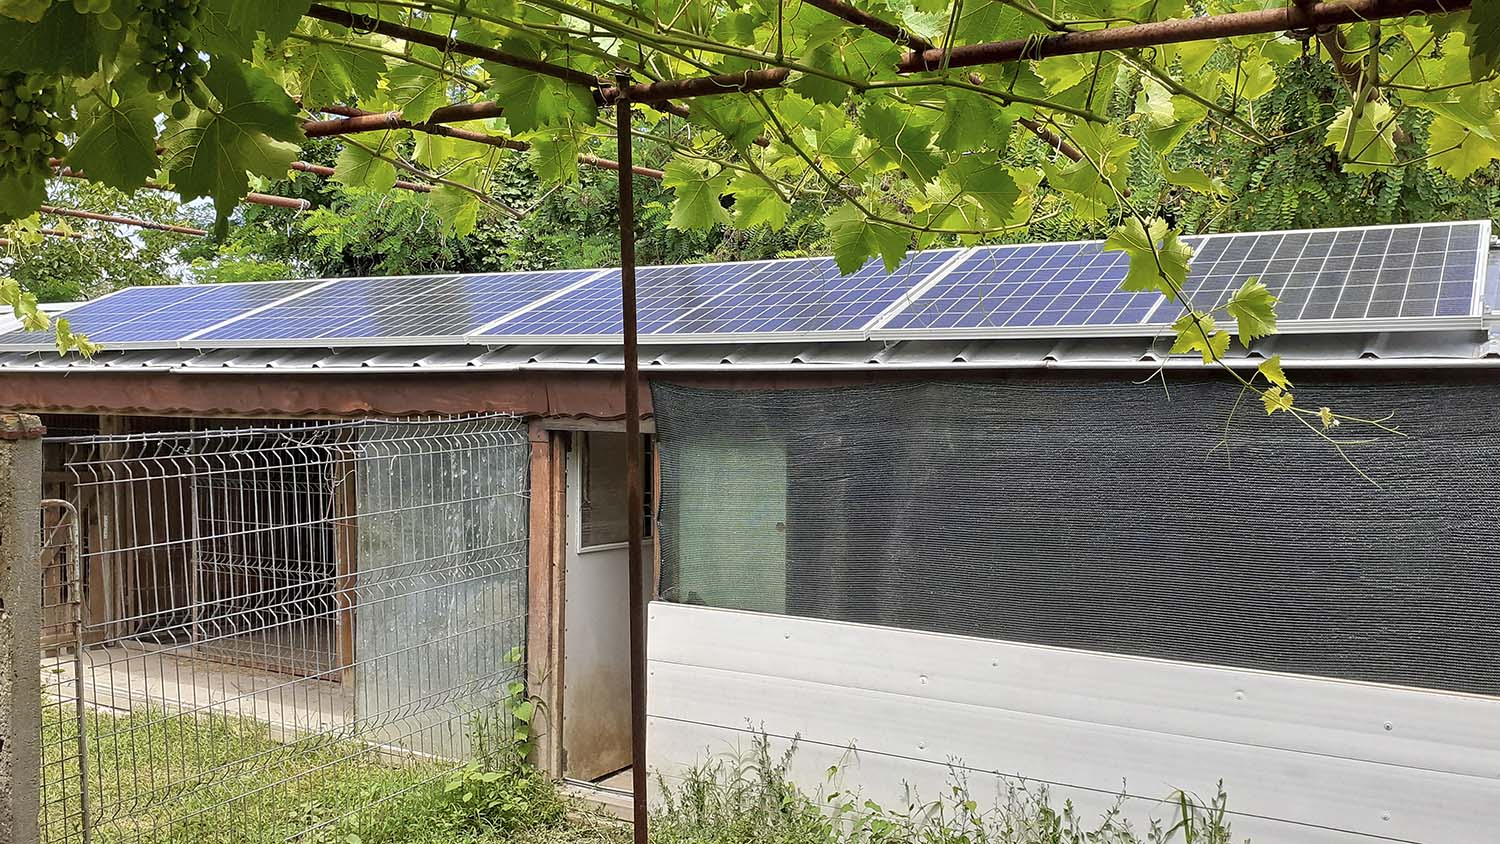 Solar modules on the roof of the aviary